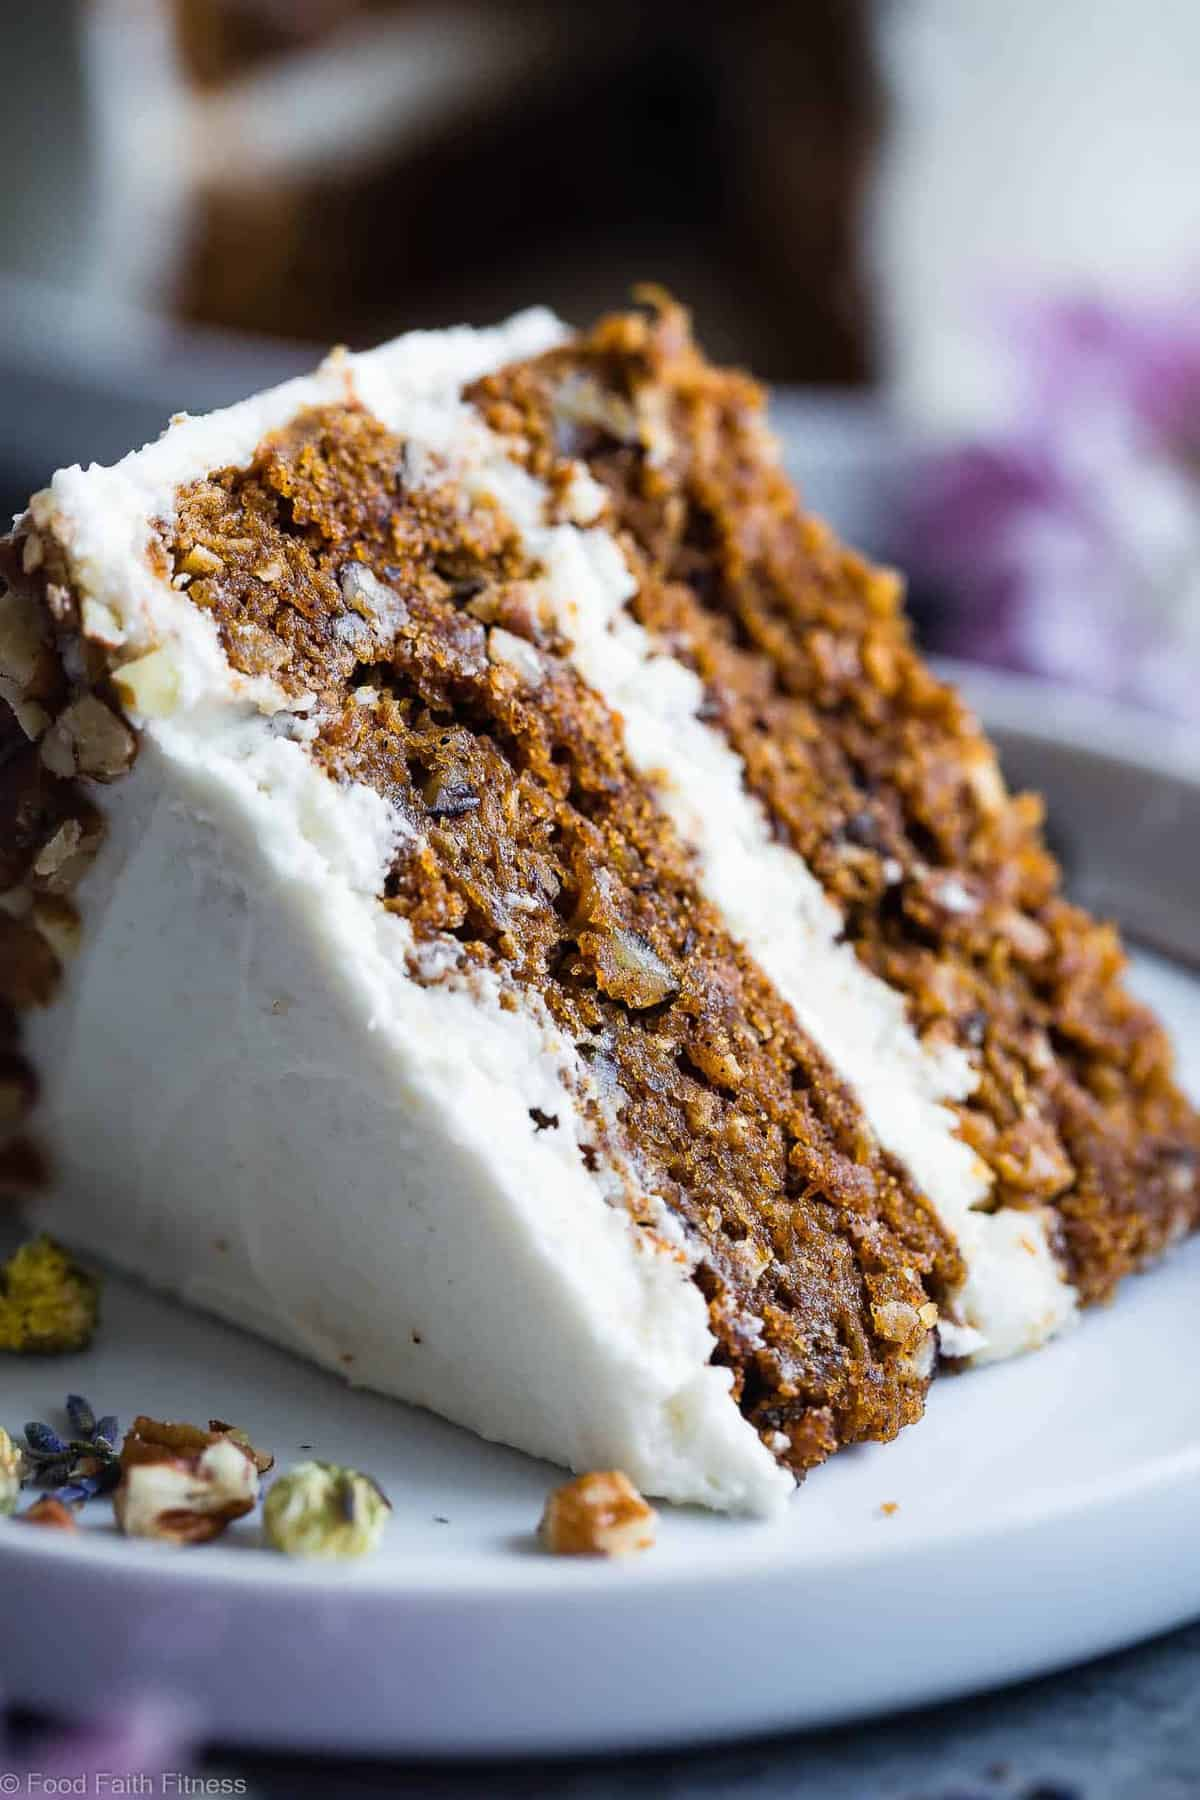 The BEST Gluten Free Vegan Carrot Cake - This one bowl, healthy carrot cake is SO moist and tender, you'll never know it's plant based, made without eggs and is gluten/grain/dairy/refined sugar free! Perfect for Easter! | #Foodfaitfitness | #Vegan #Easter #Glutenfree #DairyFree #Carrotcake